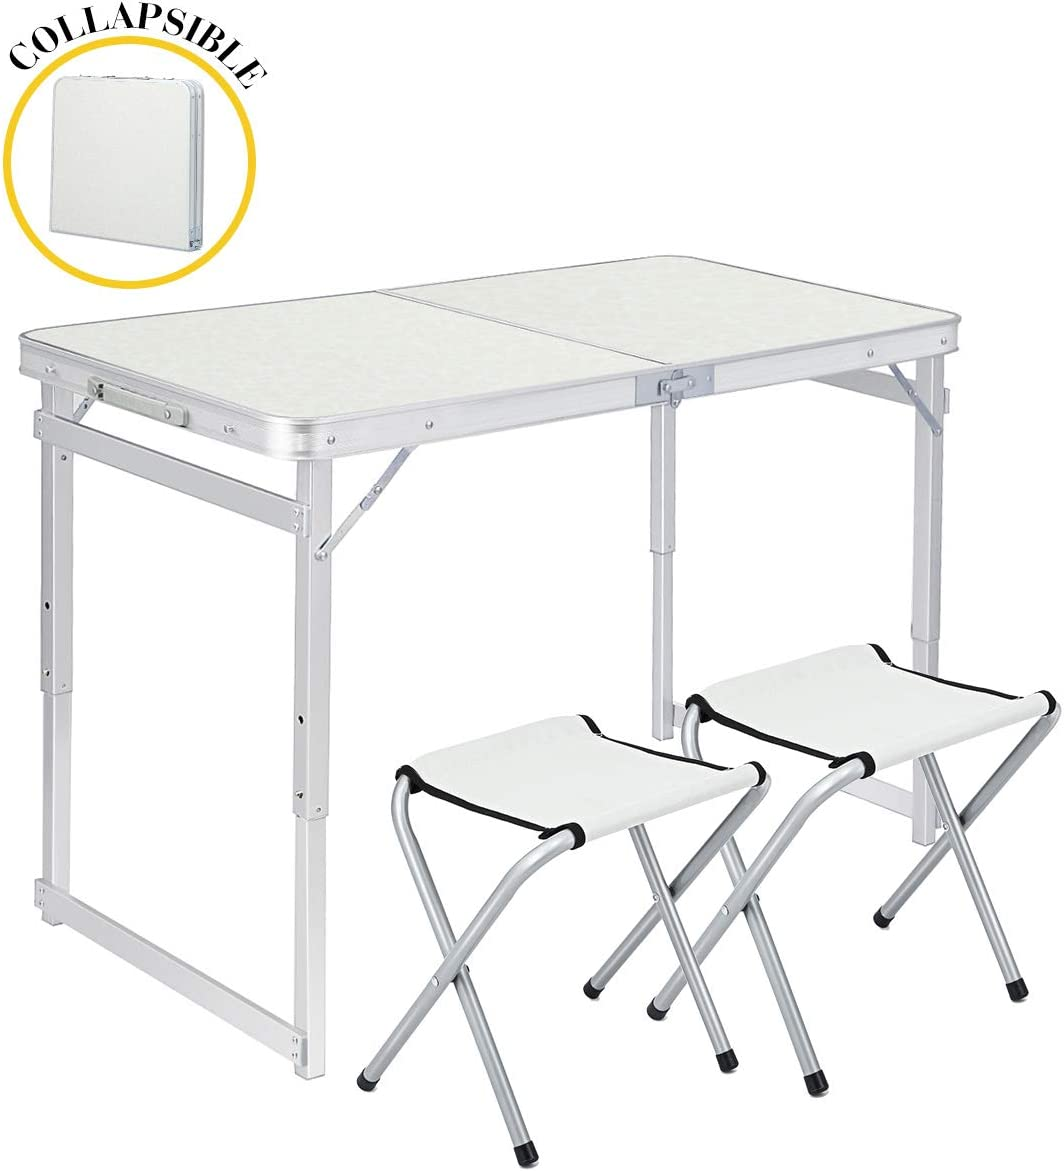 TOOCA Folding Table 4ft Aluminum Folding Camping Table Portable Picnic Table with 2 Chairs, Heights Adjustable Legs Collapsible Table for Indoor Outdoor, Picnic, Camping, Party and BBQ